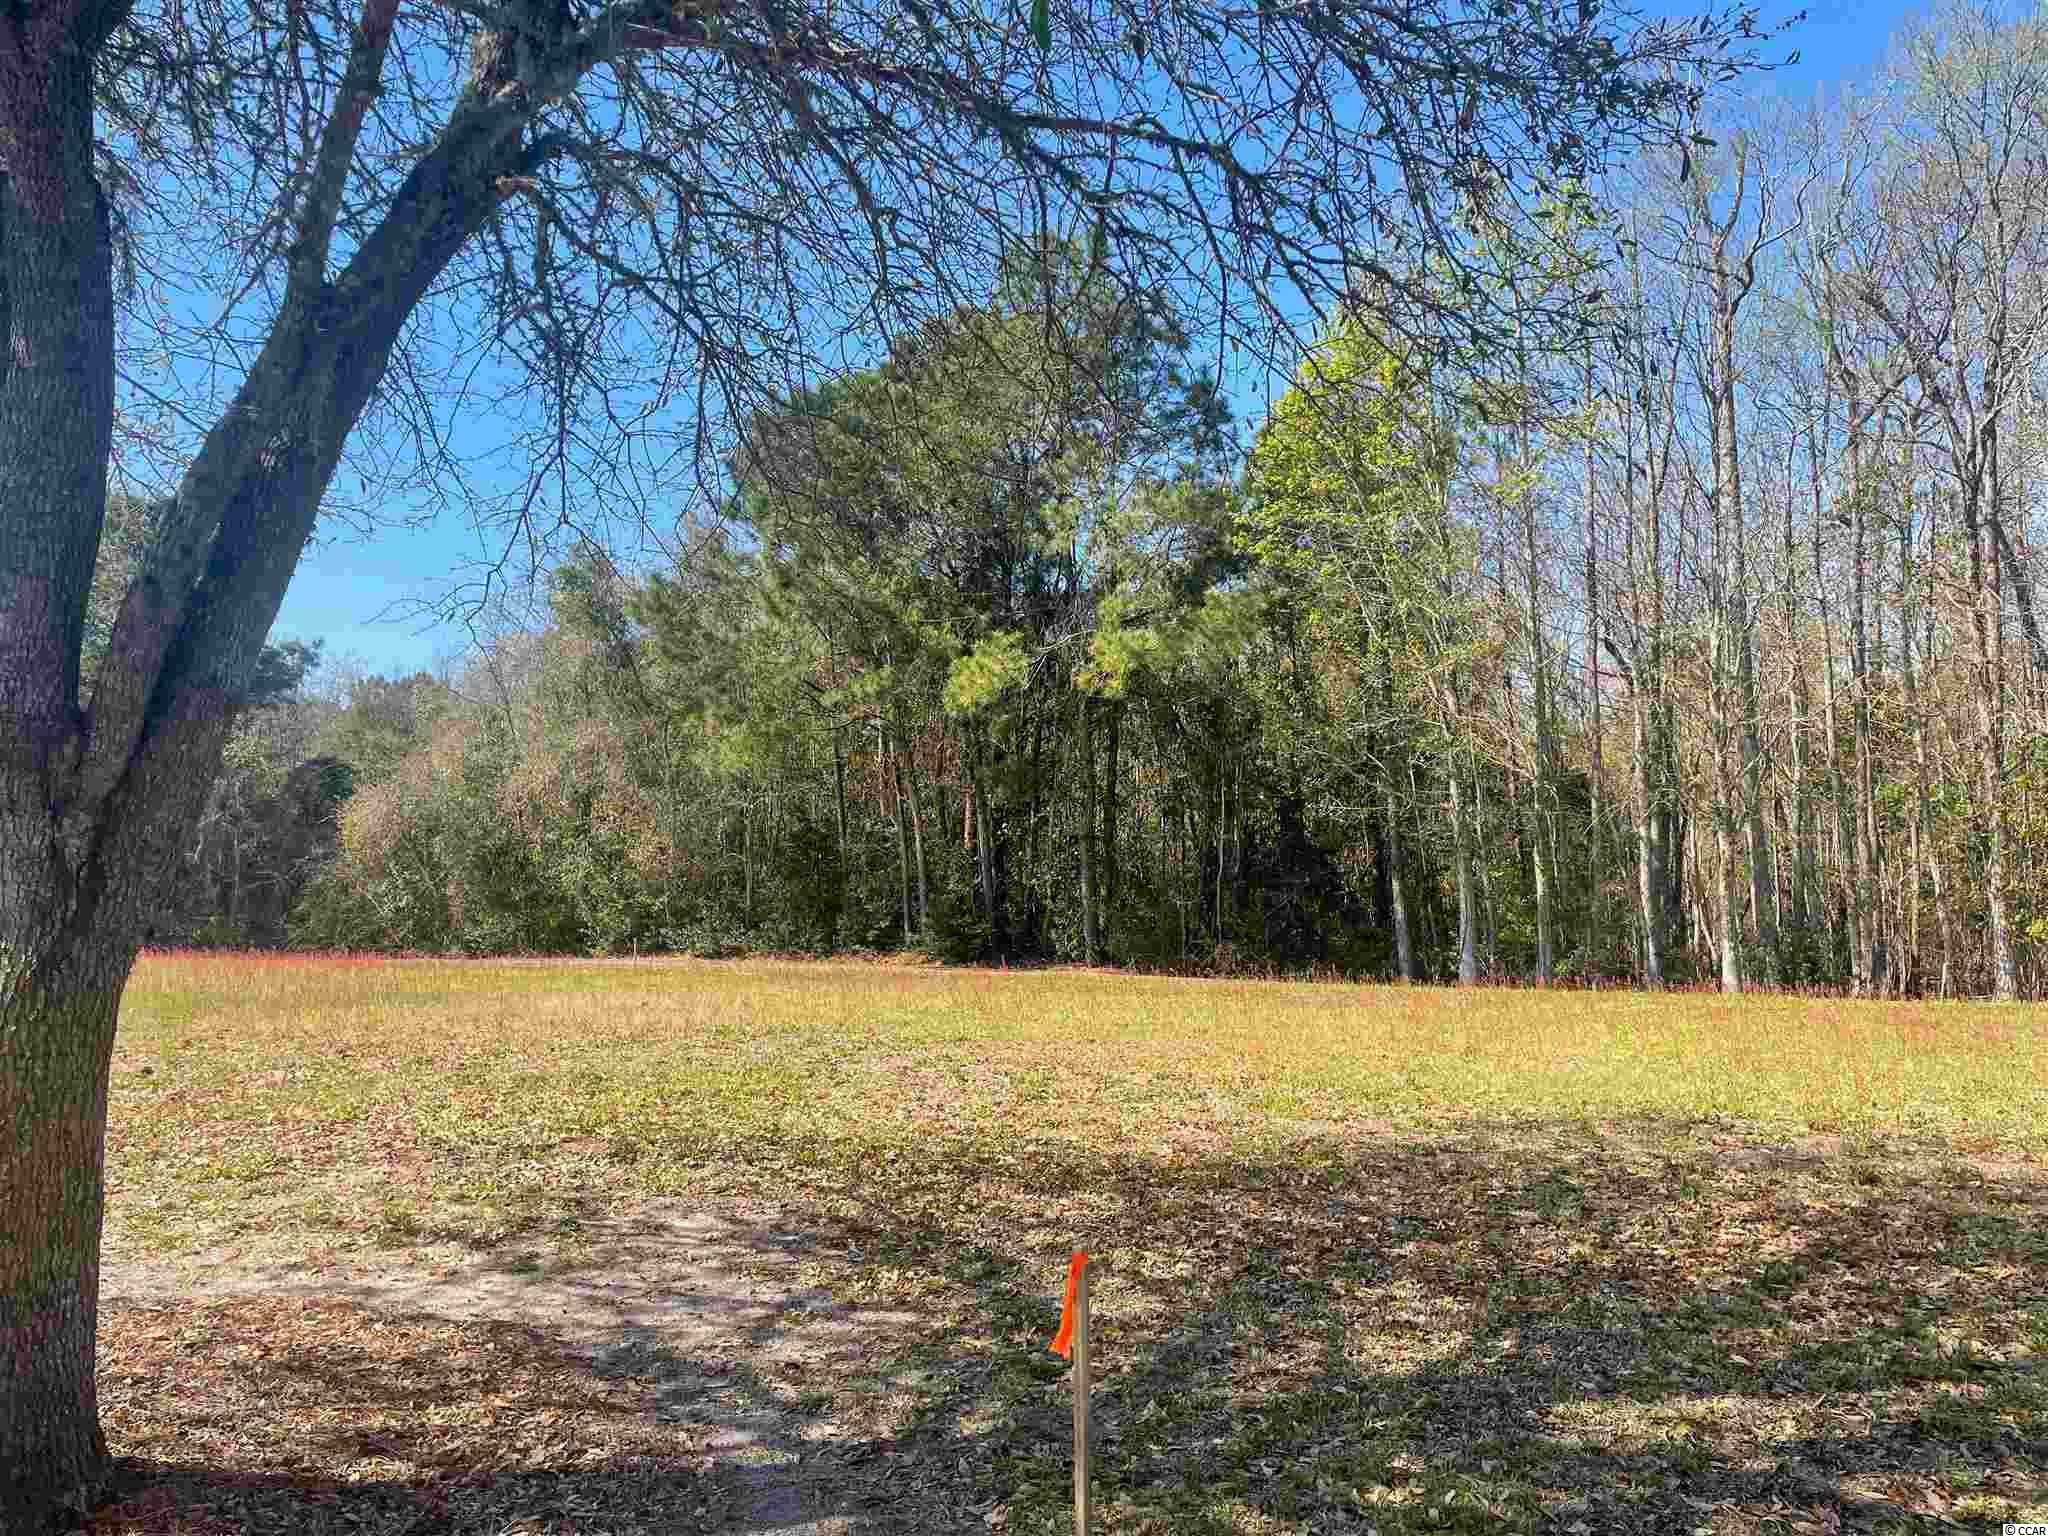 Nice lot in a great location in the wonderful neighborhood of Charleston Landing in North Myrtle Beach. This lot is wide and backs up to woods and a rear access alleyway. Build your dream home now or in the future. Charleston Landing has a nice pool with great views overlooking the marsh and Cherry Grove, a gazebo, a playground and ponds with catch and release fishing. All this and a golf cart ride to the beach!